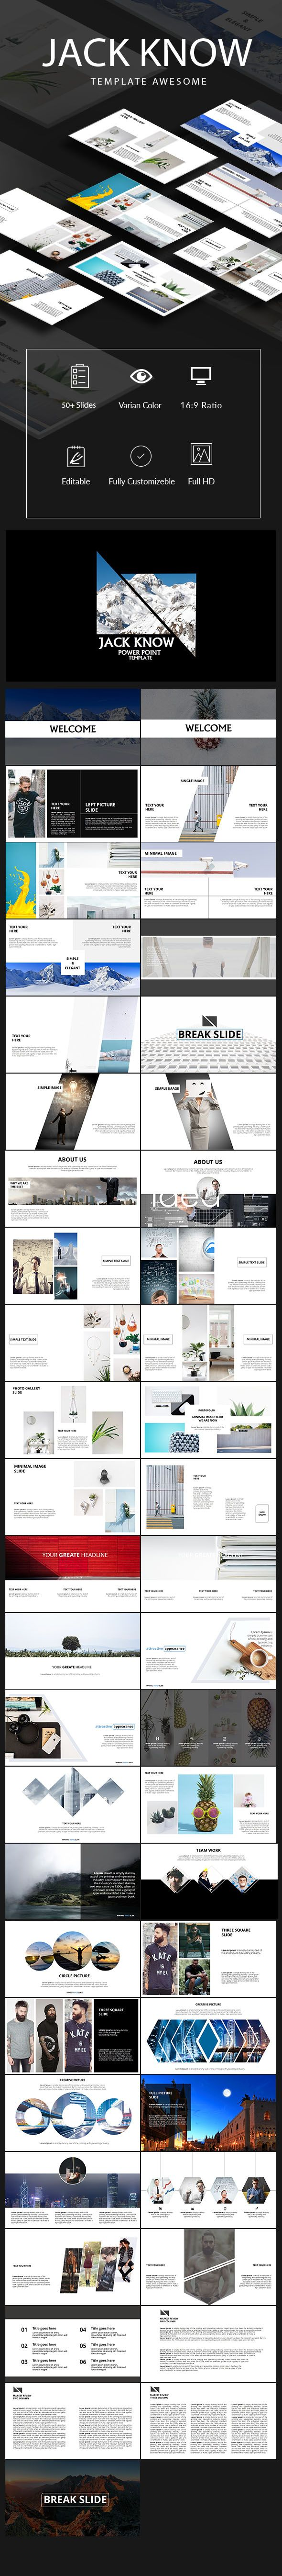 Jack Know PowerPoint Template